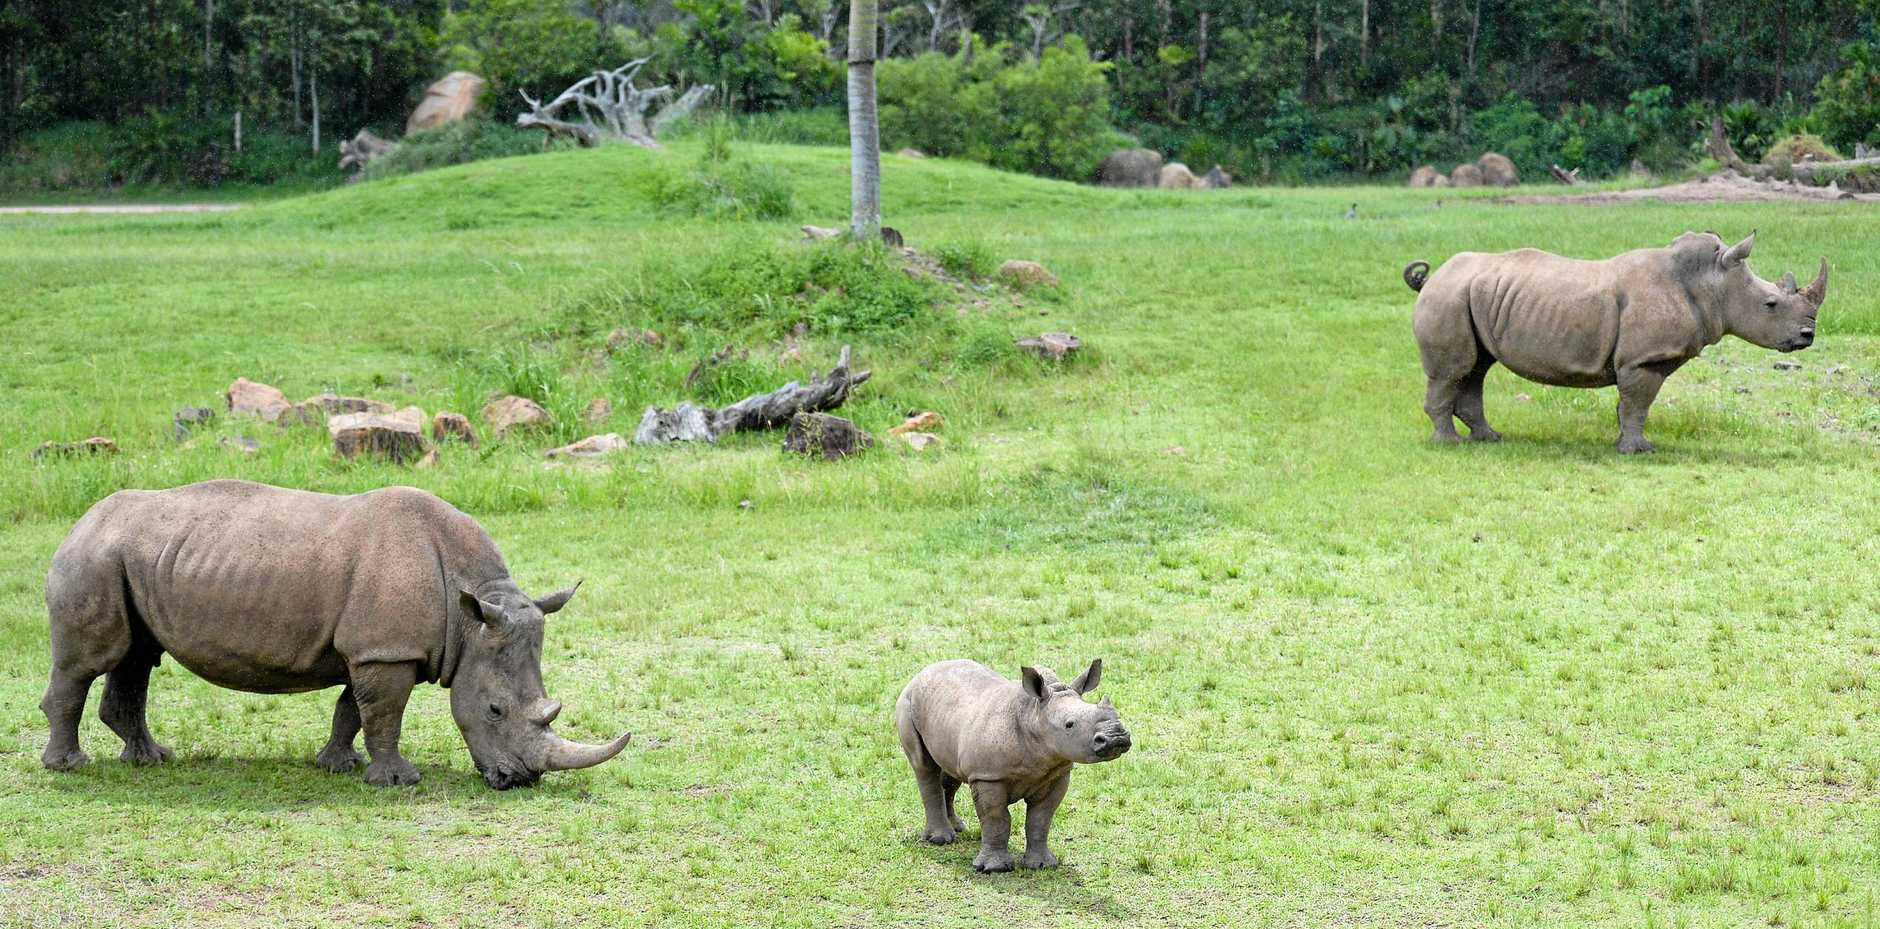 Australia Zoo's wildlife were safe during the storm which caused major damage to the facility.